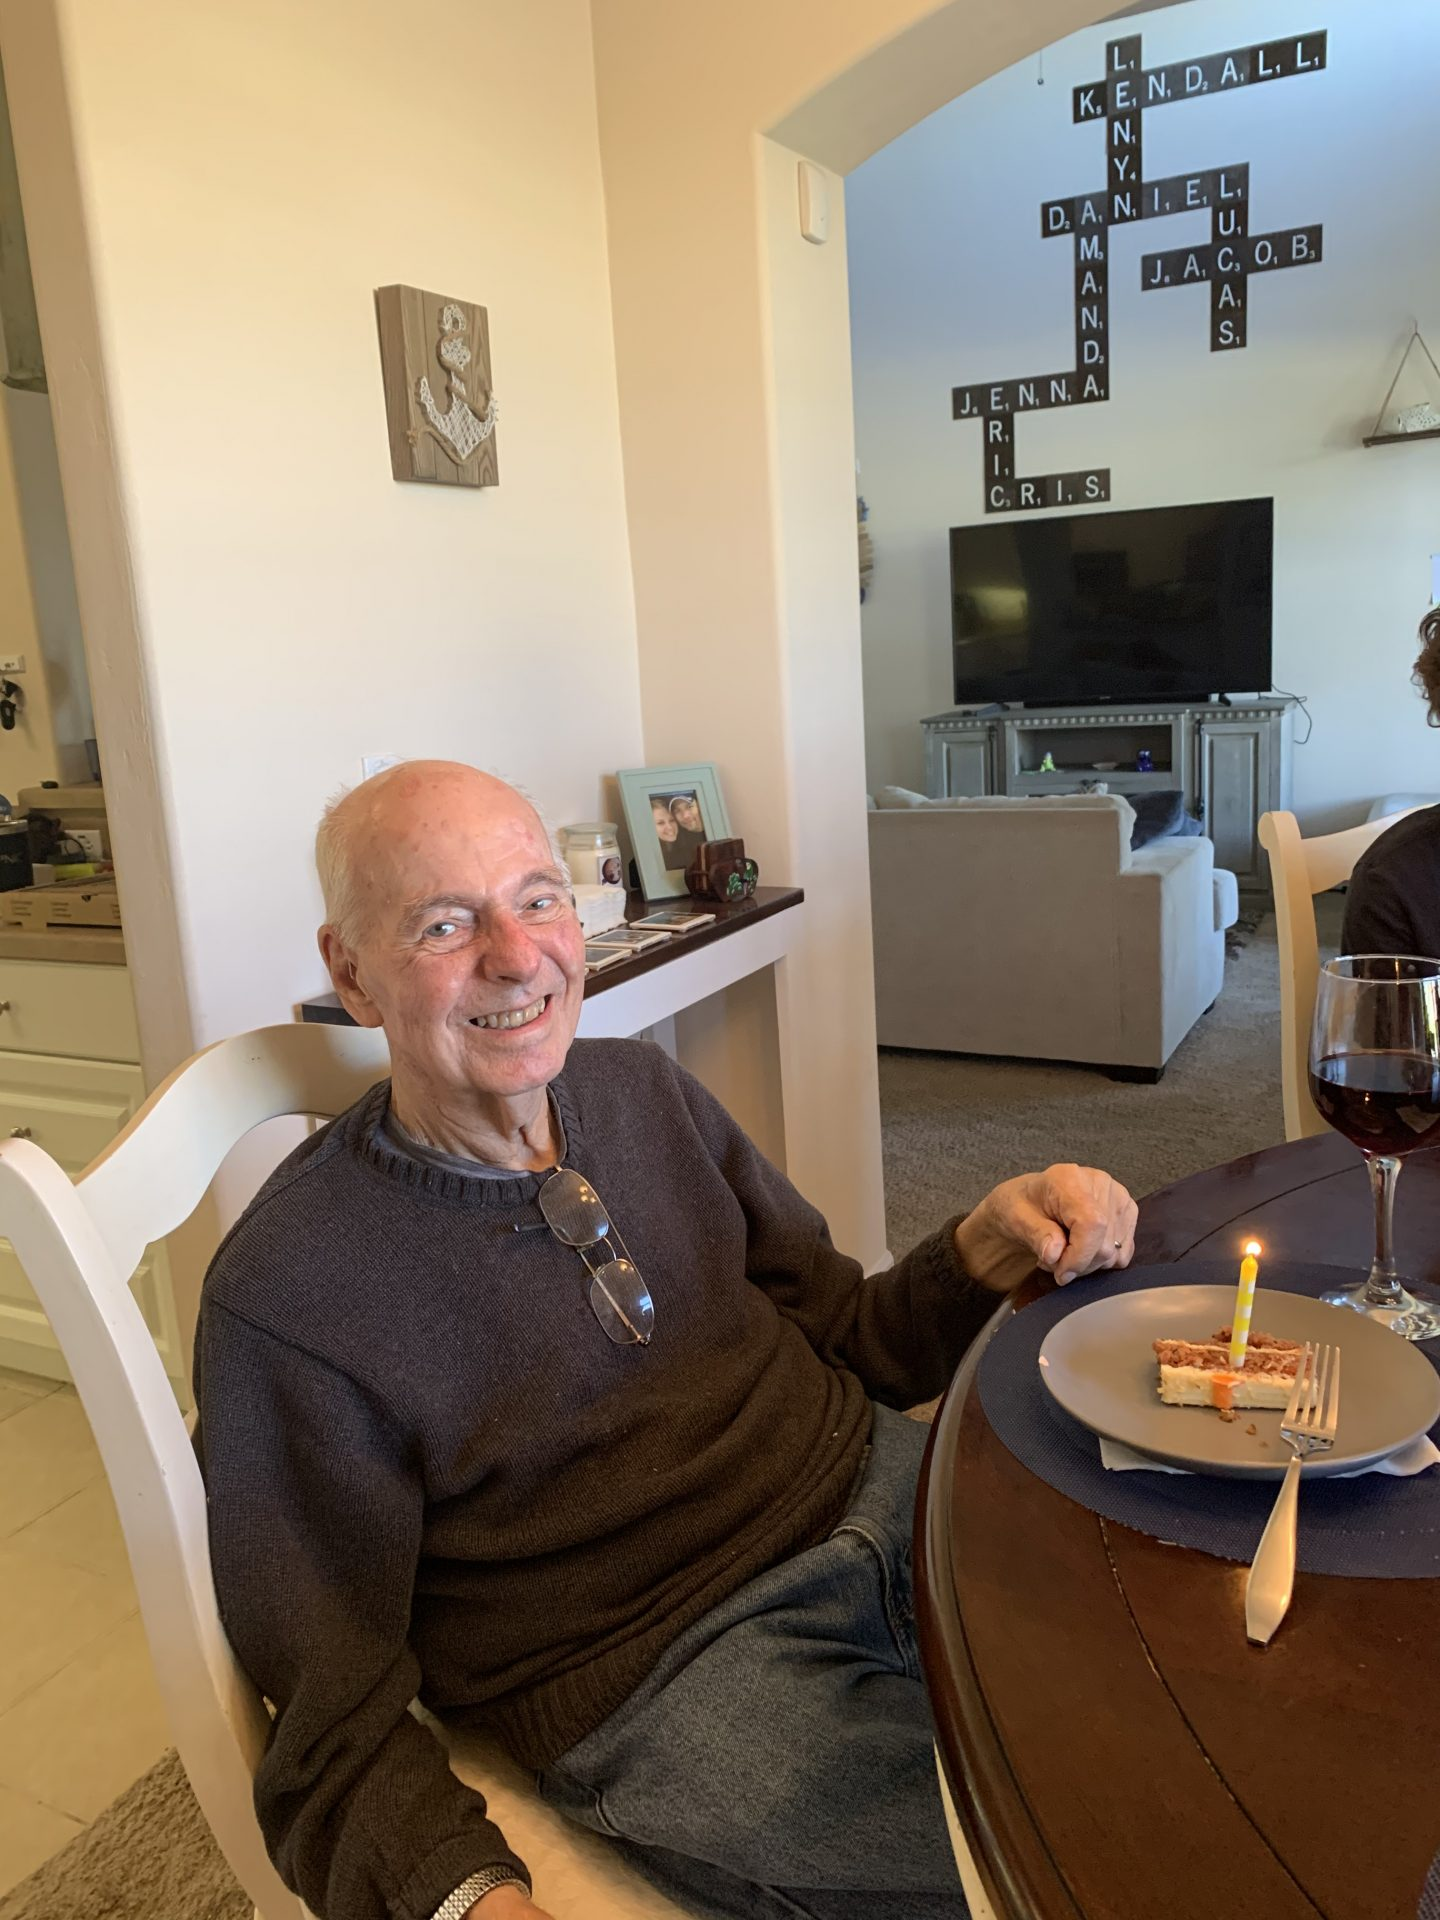 Celebrating your last earthly birthday! Here's to 89!